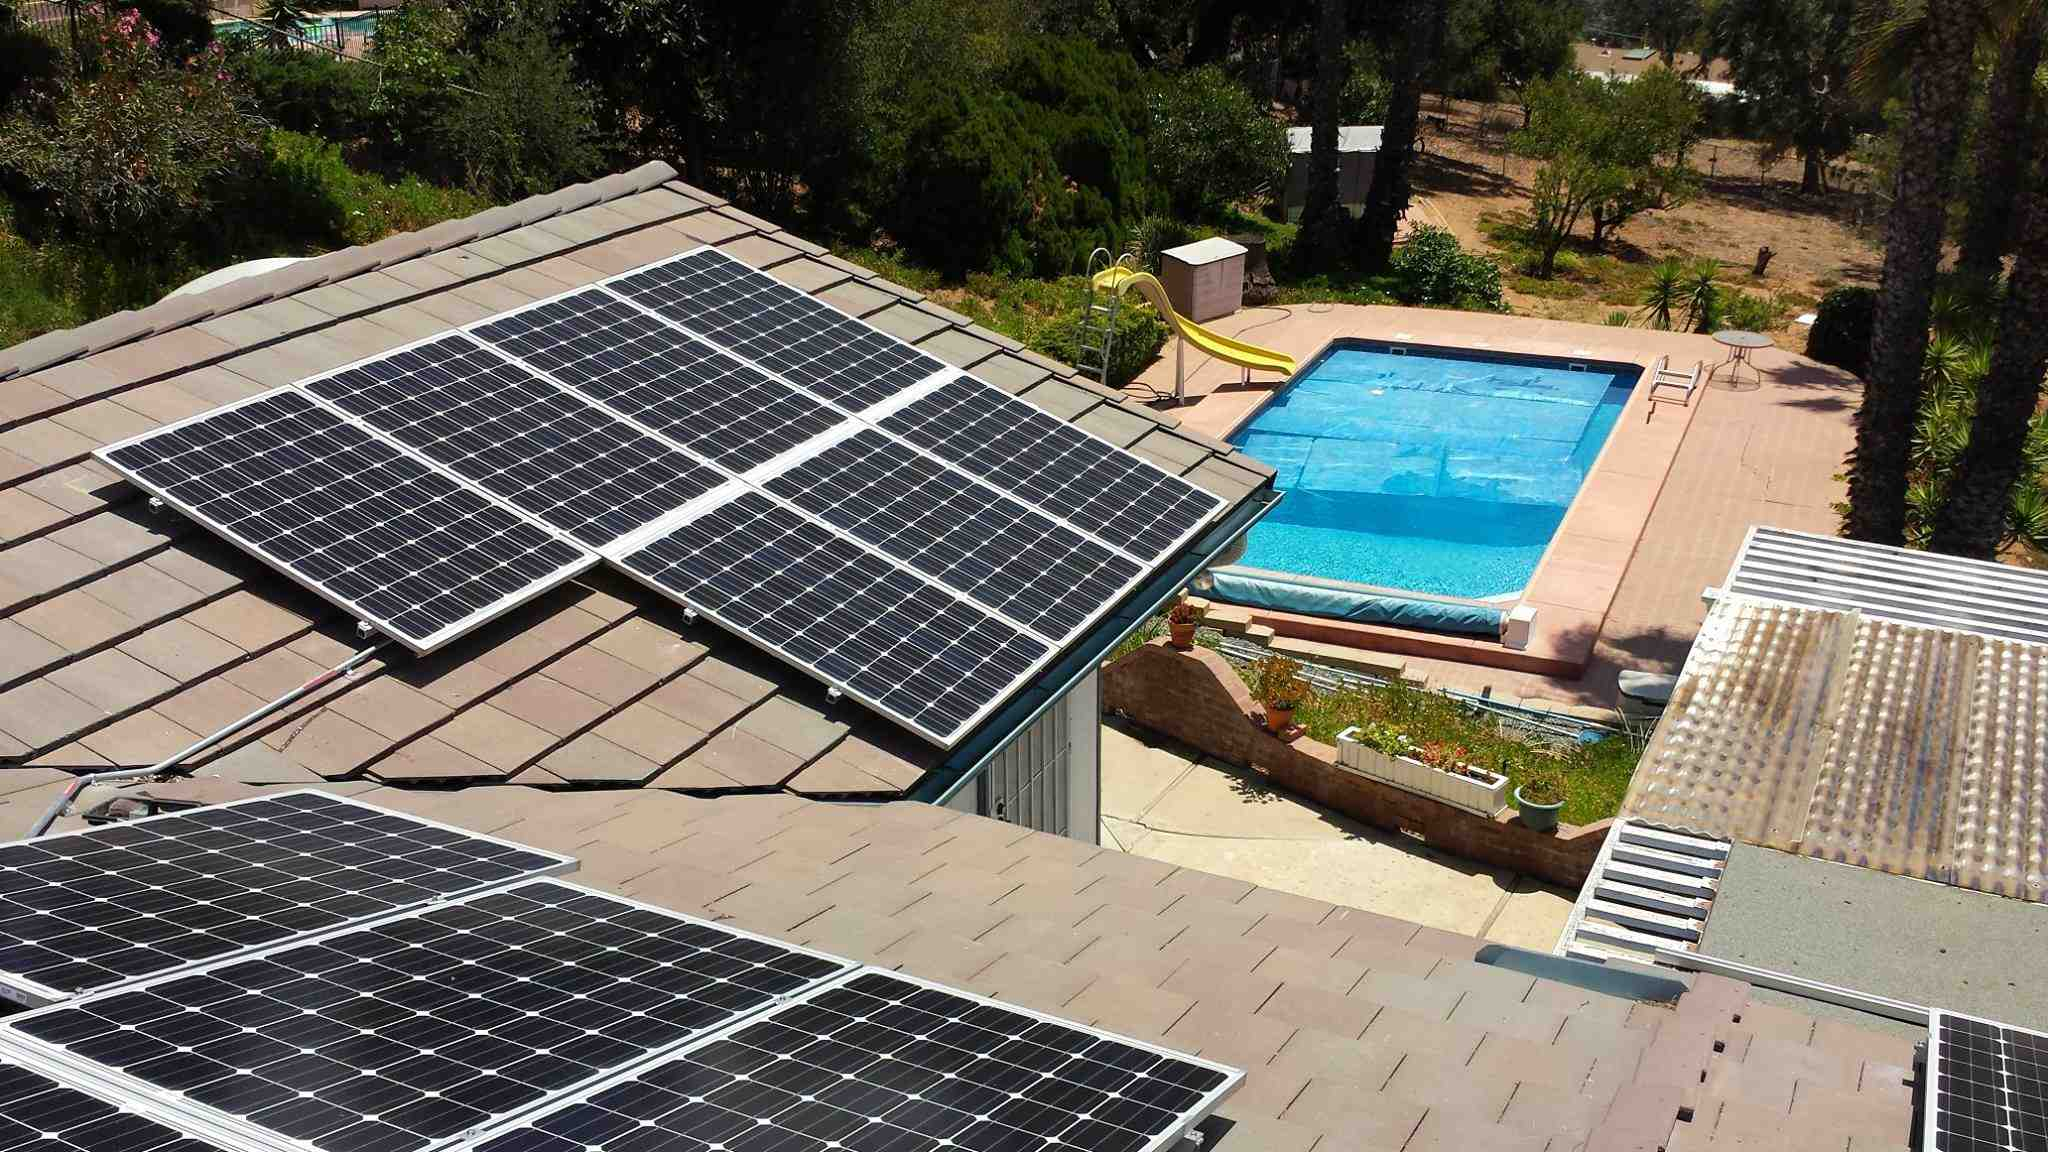 Do solar companies pay for a new roof?